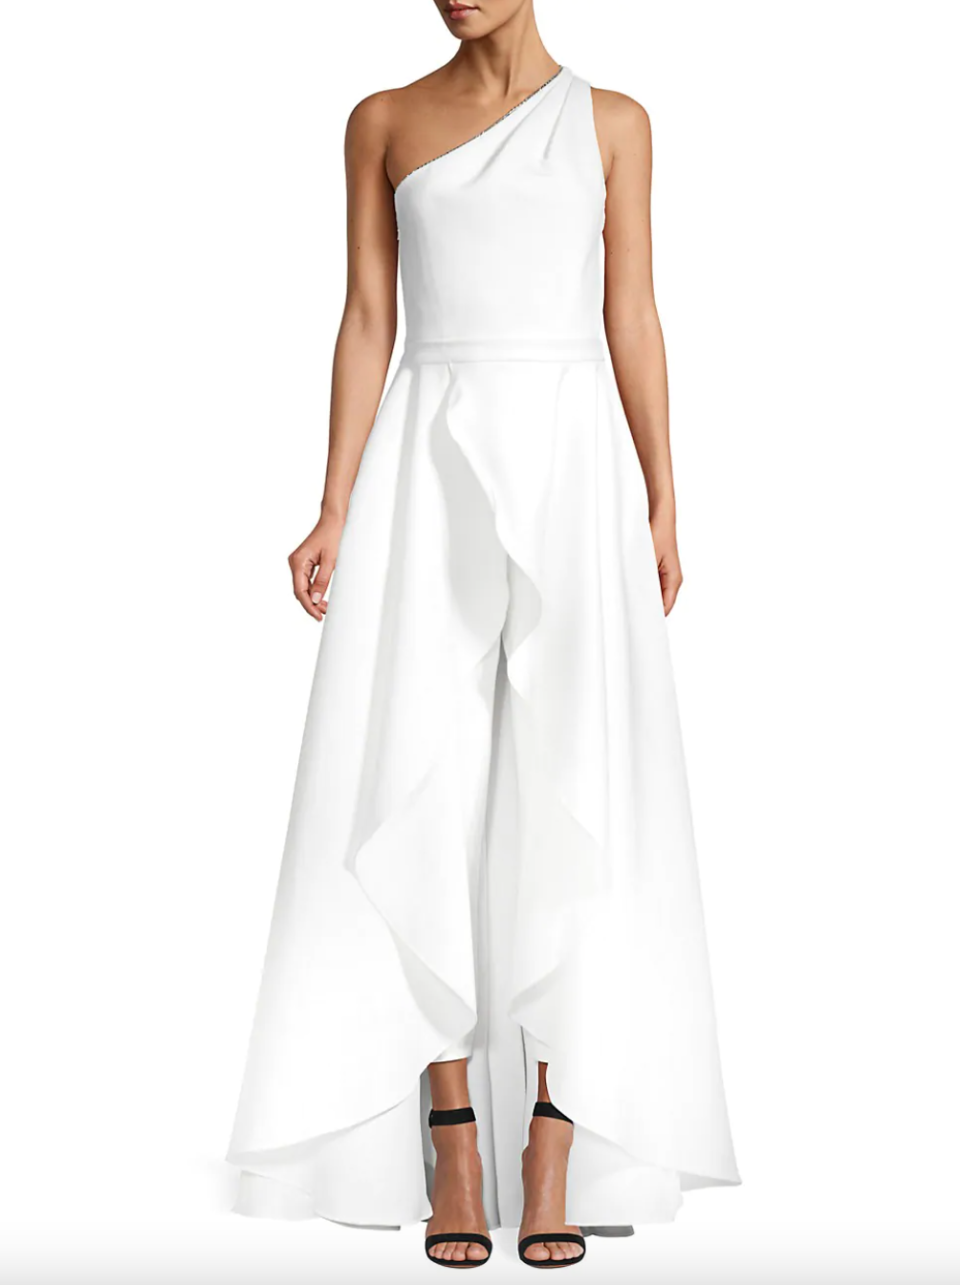 Jay Godfrey Orlando One-Shoulder Skirt Overlay Jumpsuit (Photo via Saks Fifth Avenue)